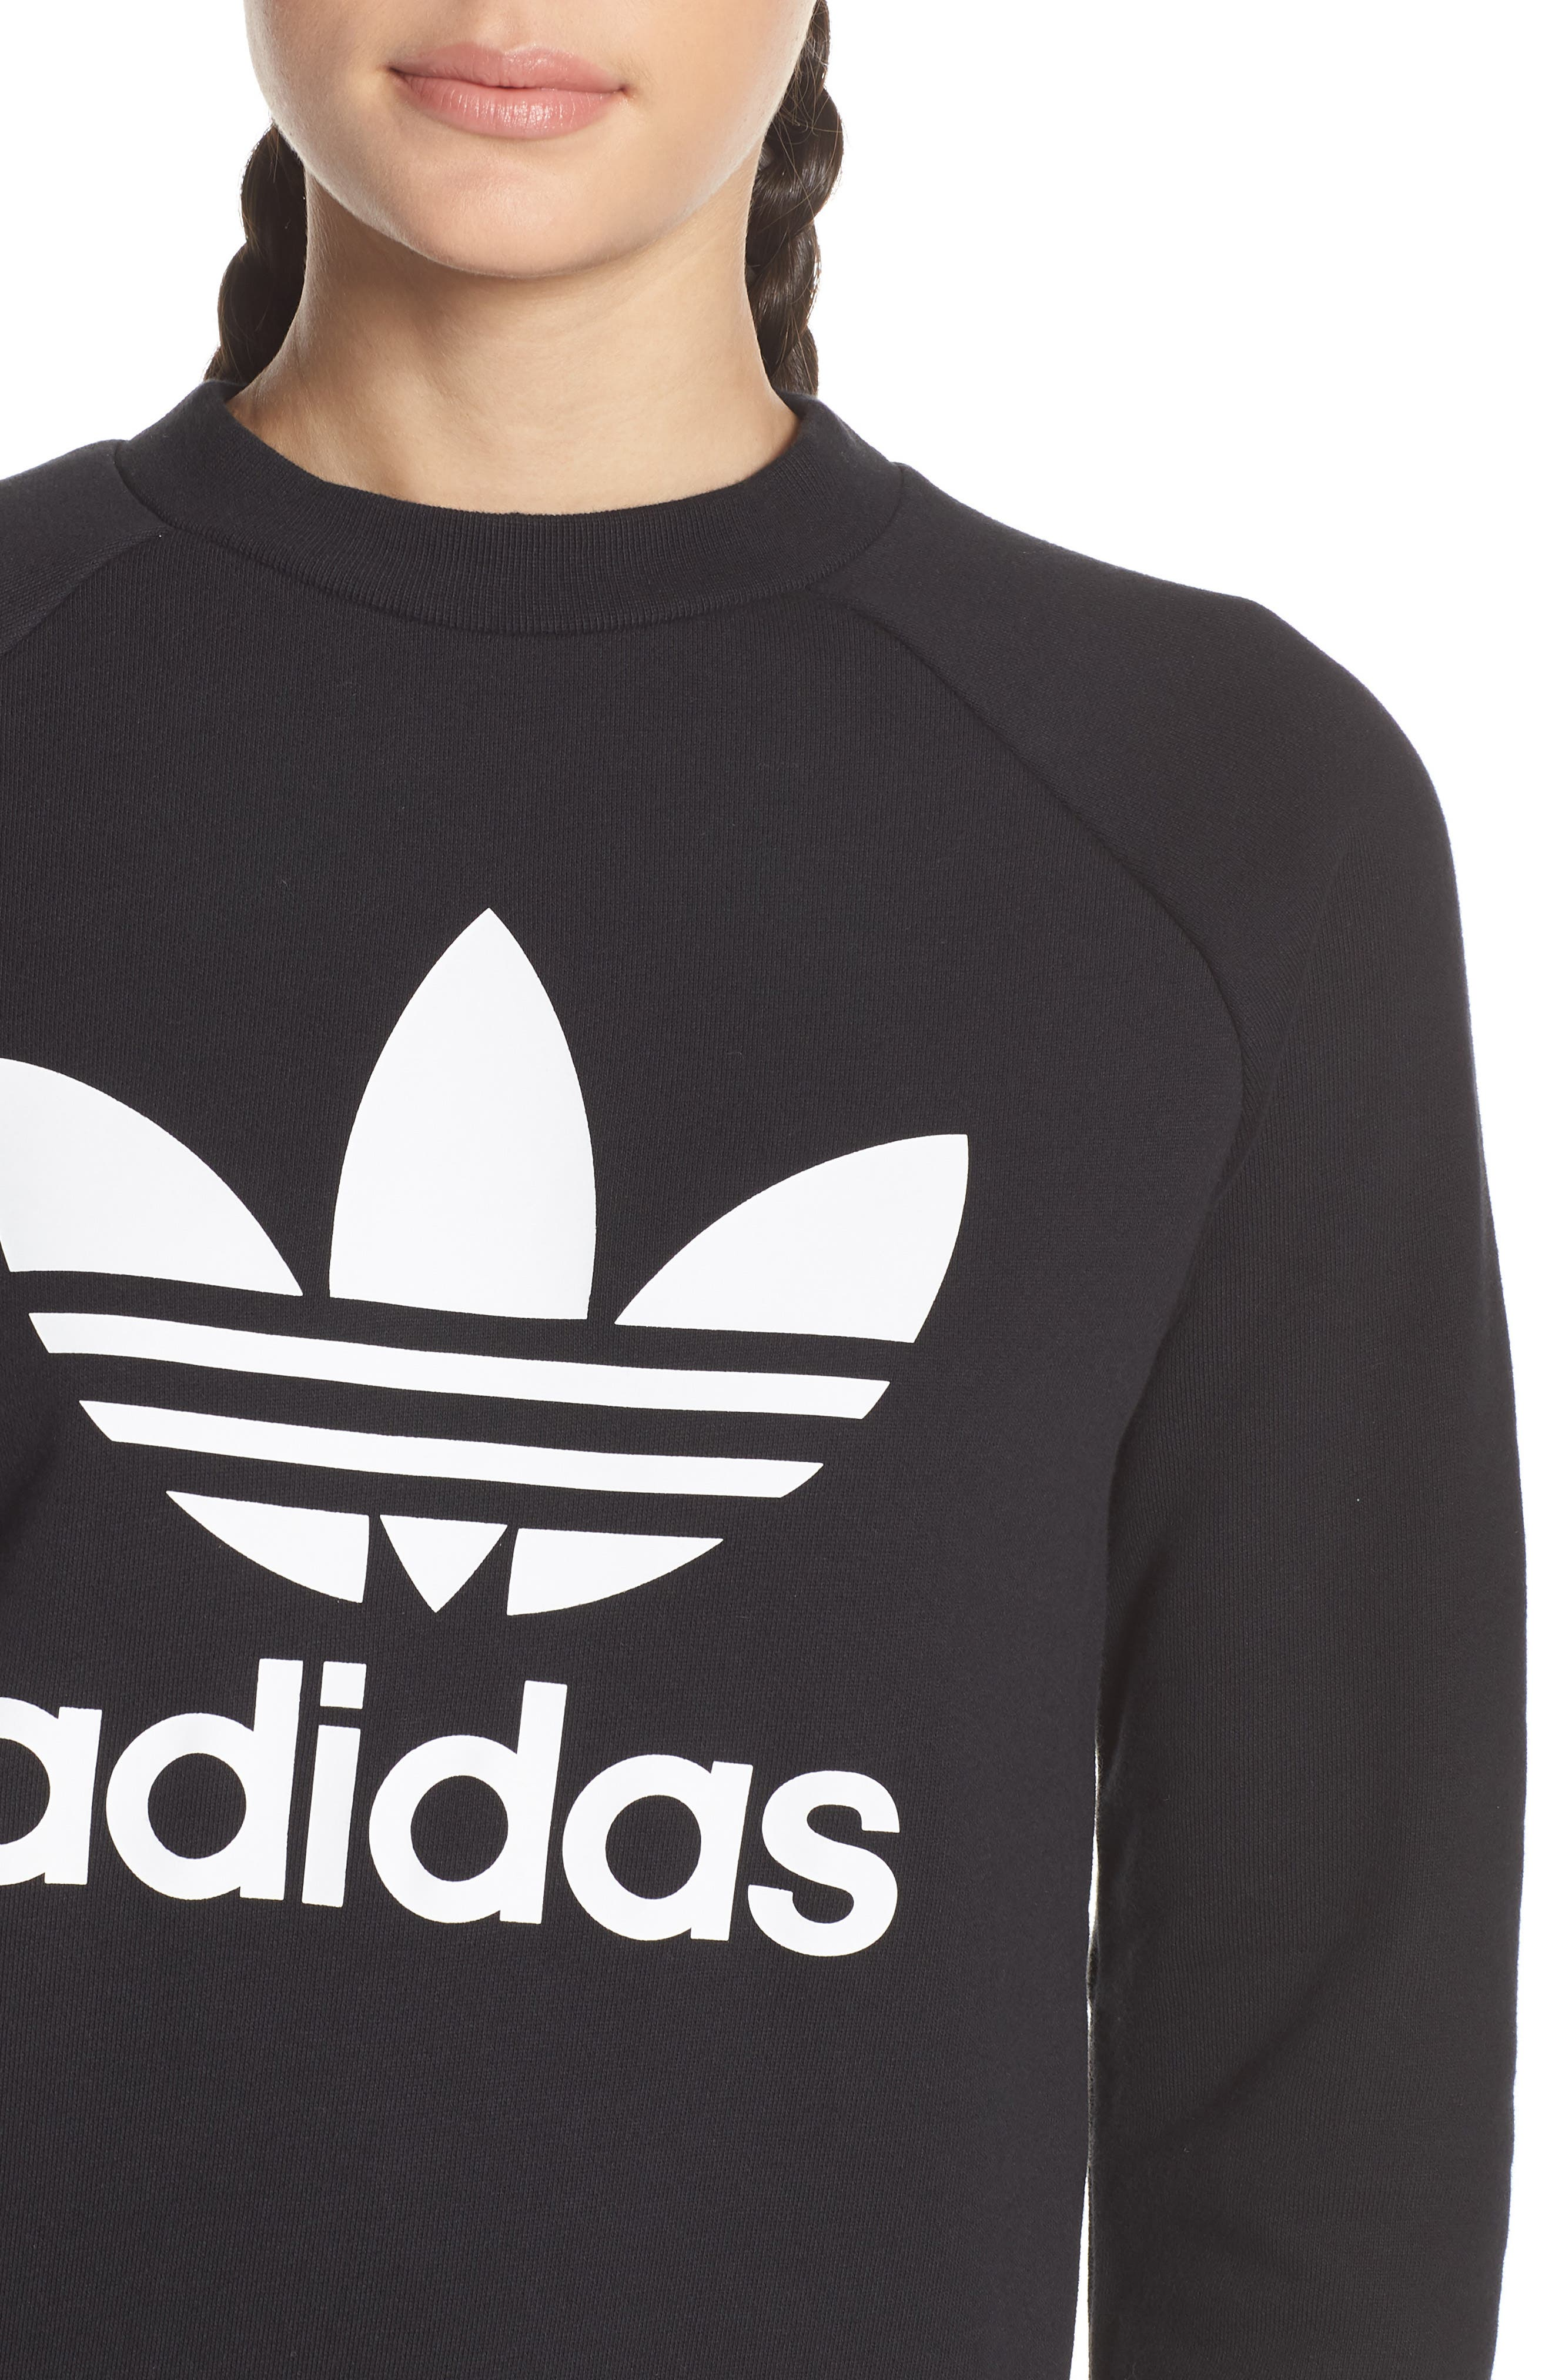 ADIDAS ORIGINALS,                             Trefoil Sweatshirt,                             Alternate thumbnail 4, color,                             BLACK